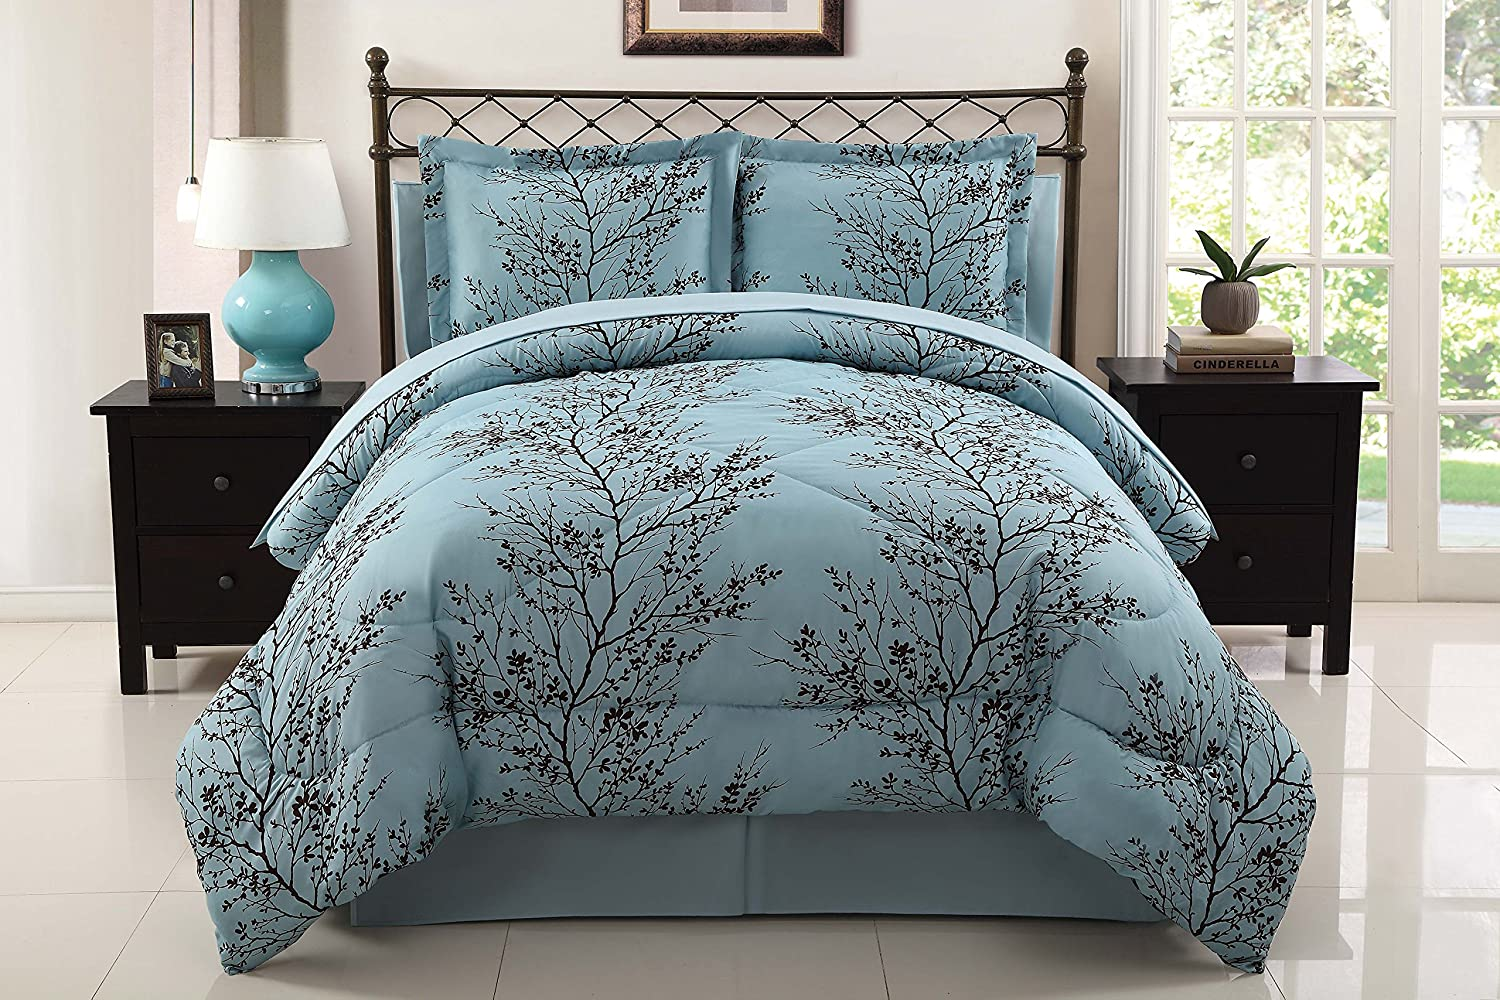 amazon com vcny leaf 8 piece bed in bag set king blue chocolate amazon com vcny leaf 8 piece bed in bag set king blue chocolate home kitchen